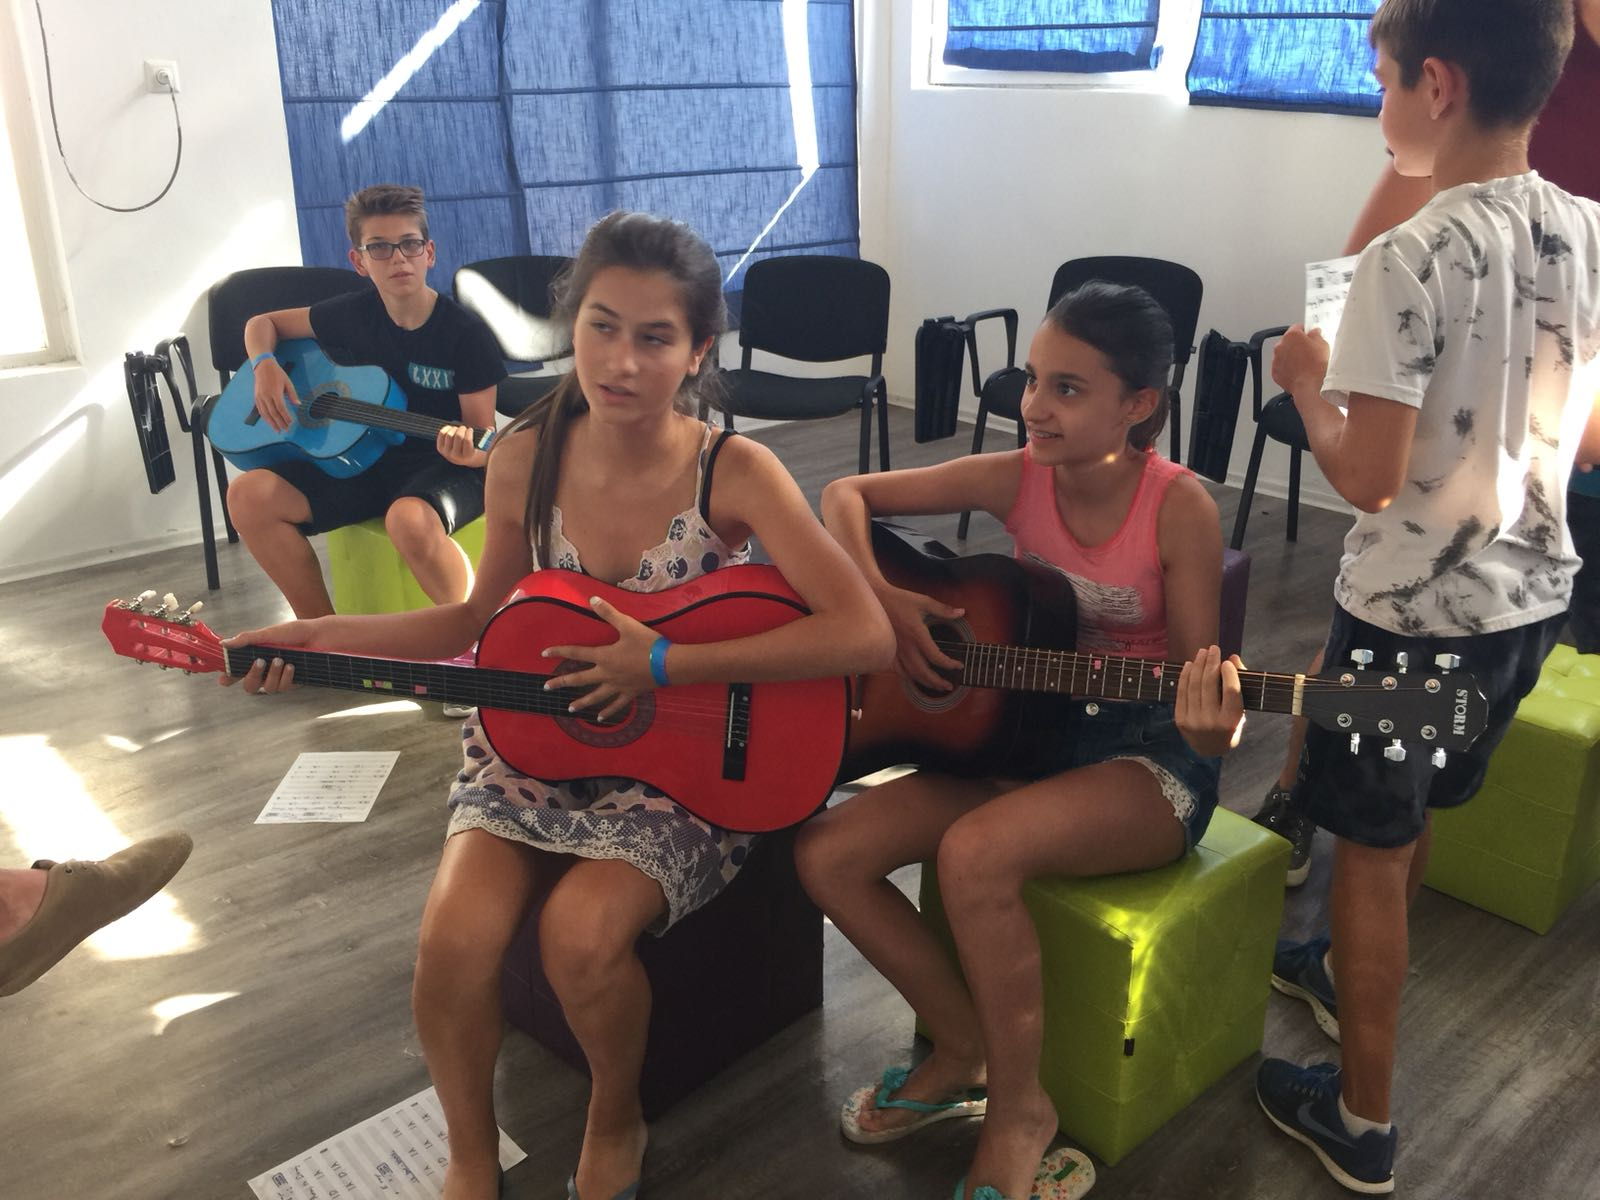 language vacations for kids at Bulgarian seaside Z camp, Day 27 - musical workshop - two girls and one boy with acoustic guitars